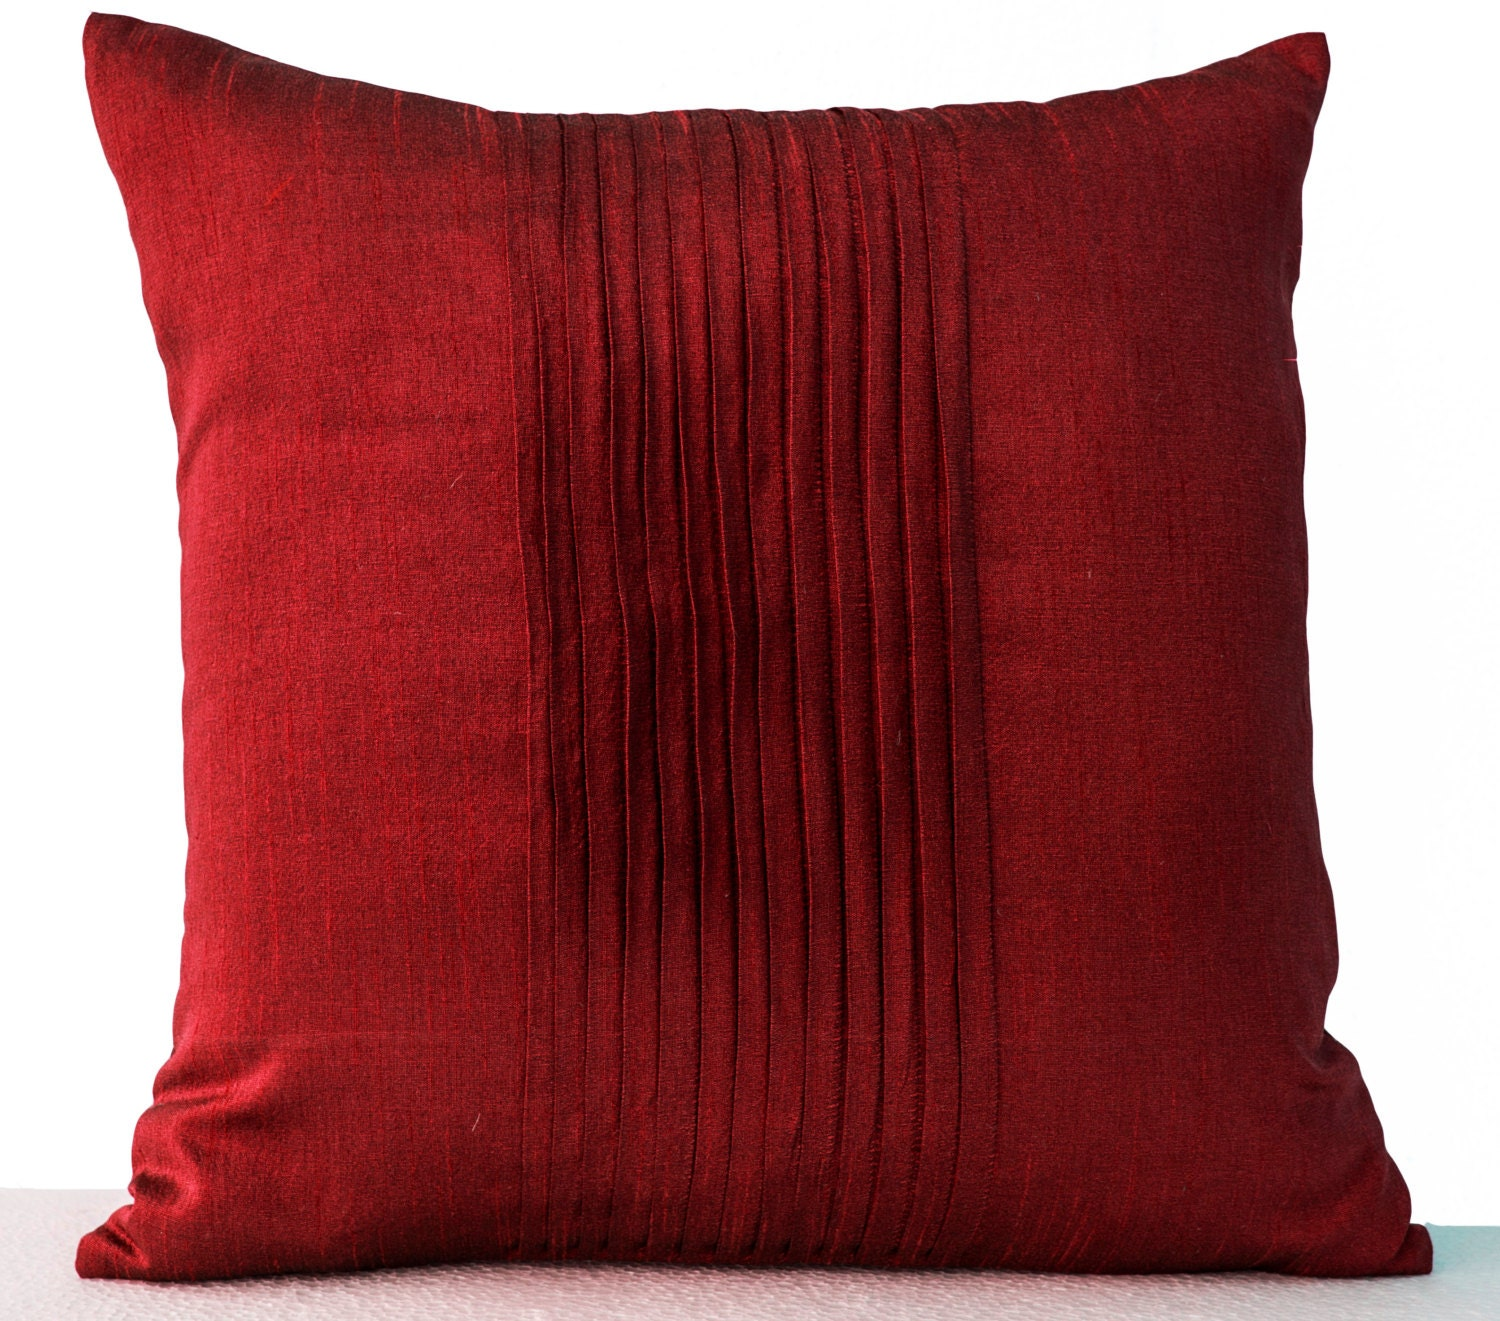 Throw Pillow Red : Throw pillows in red art silk Attractive cushion in rippled